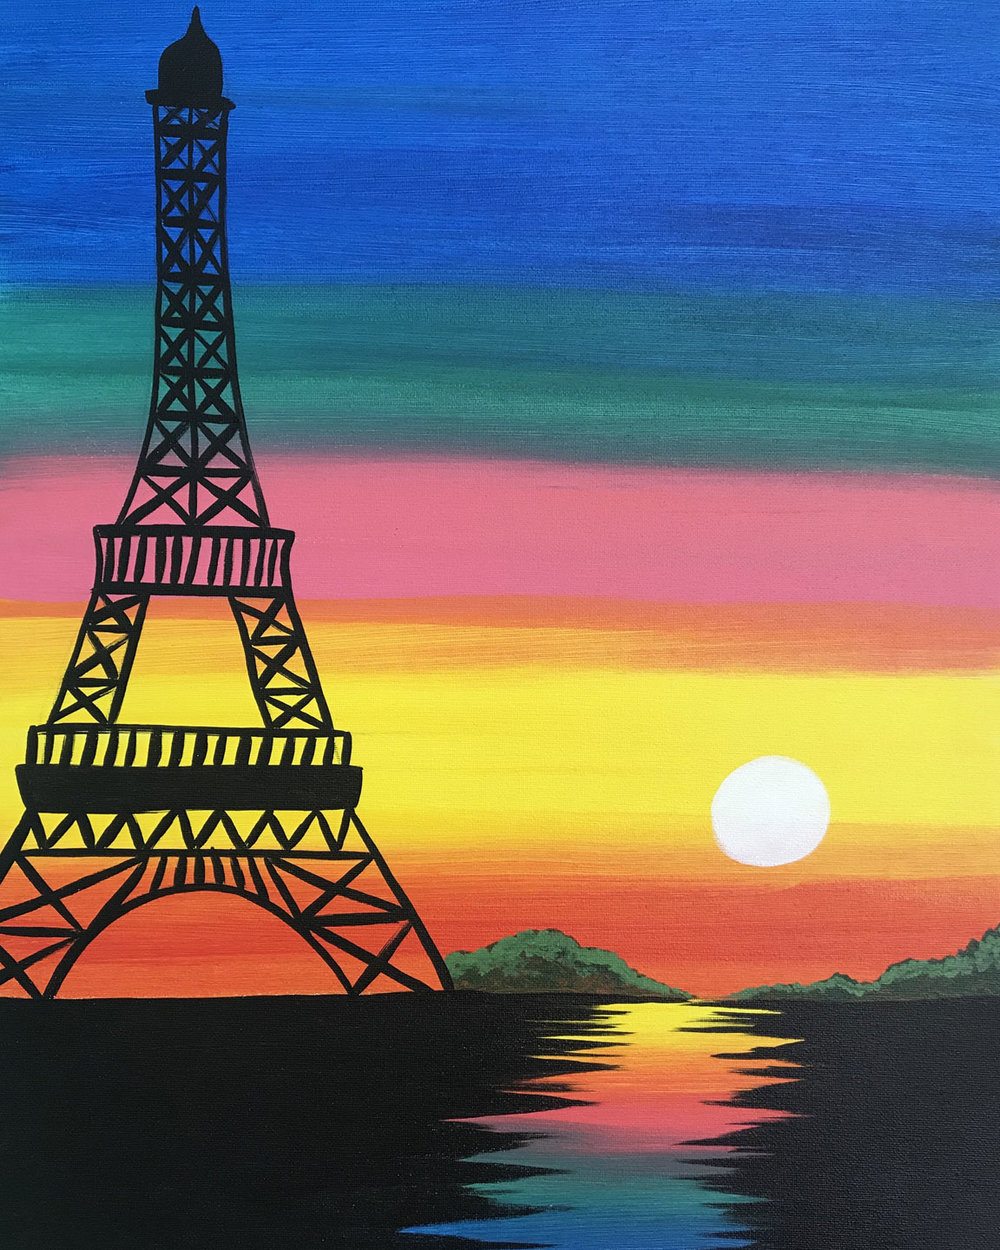 Eiffel Tower (2 hours)